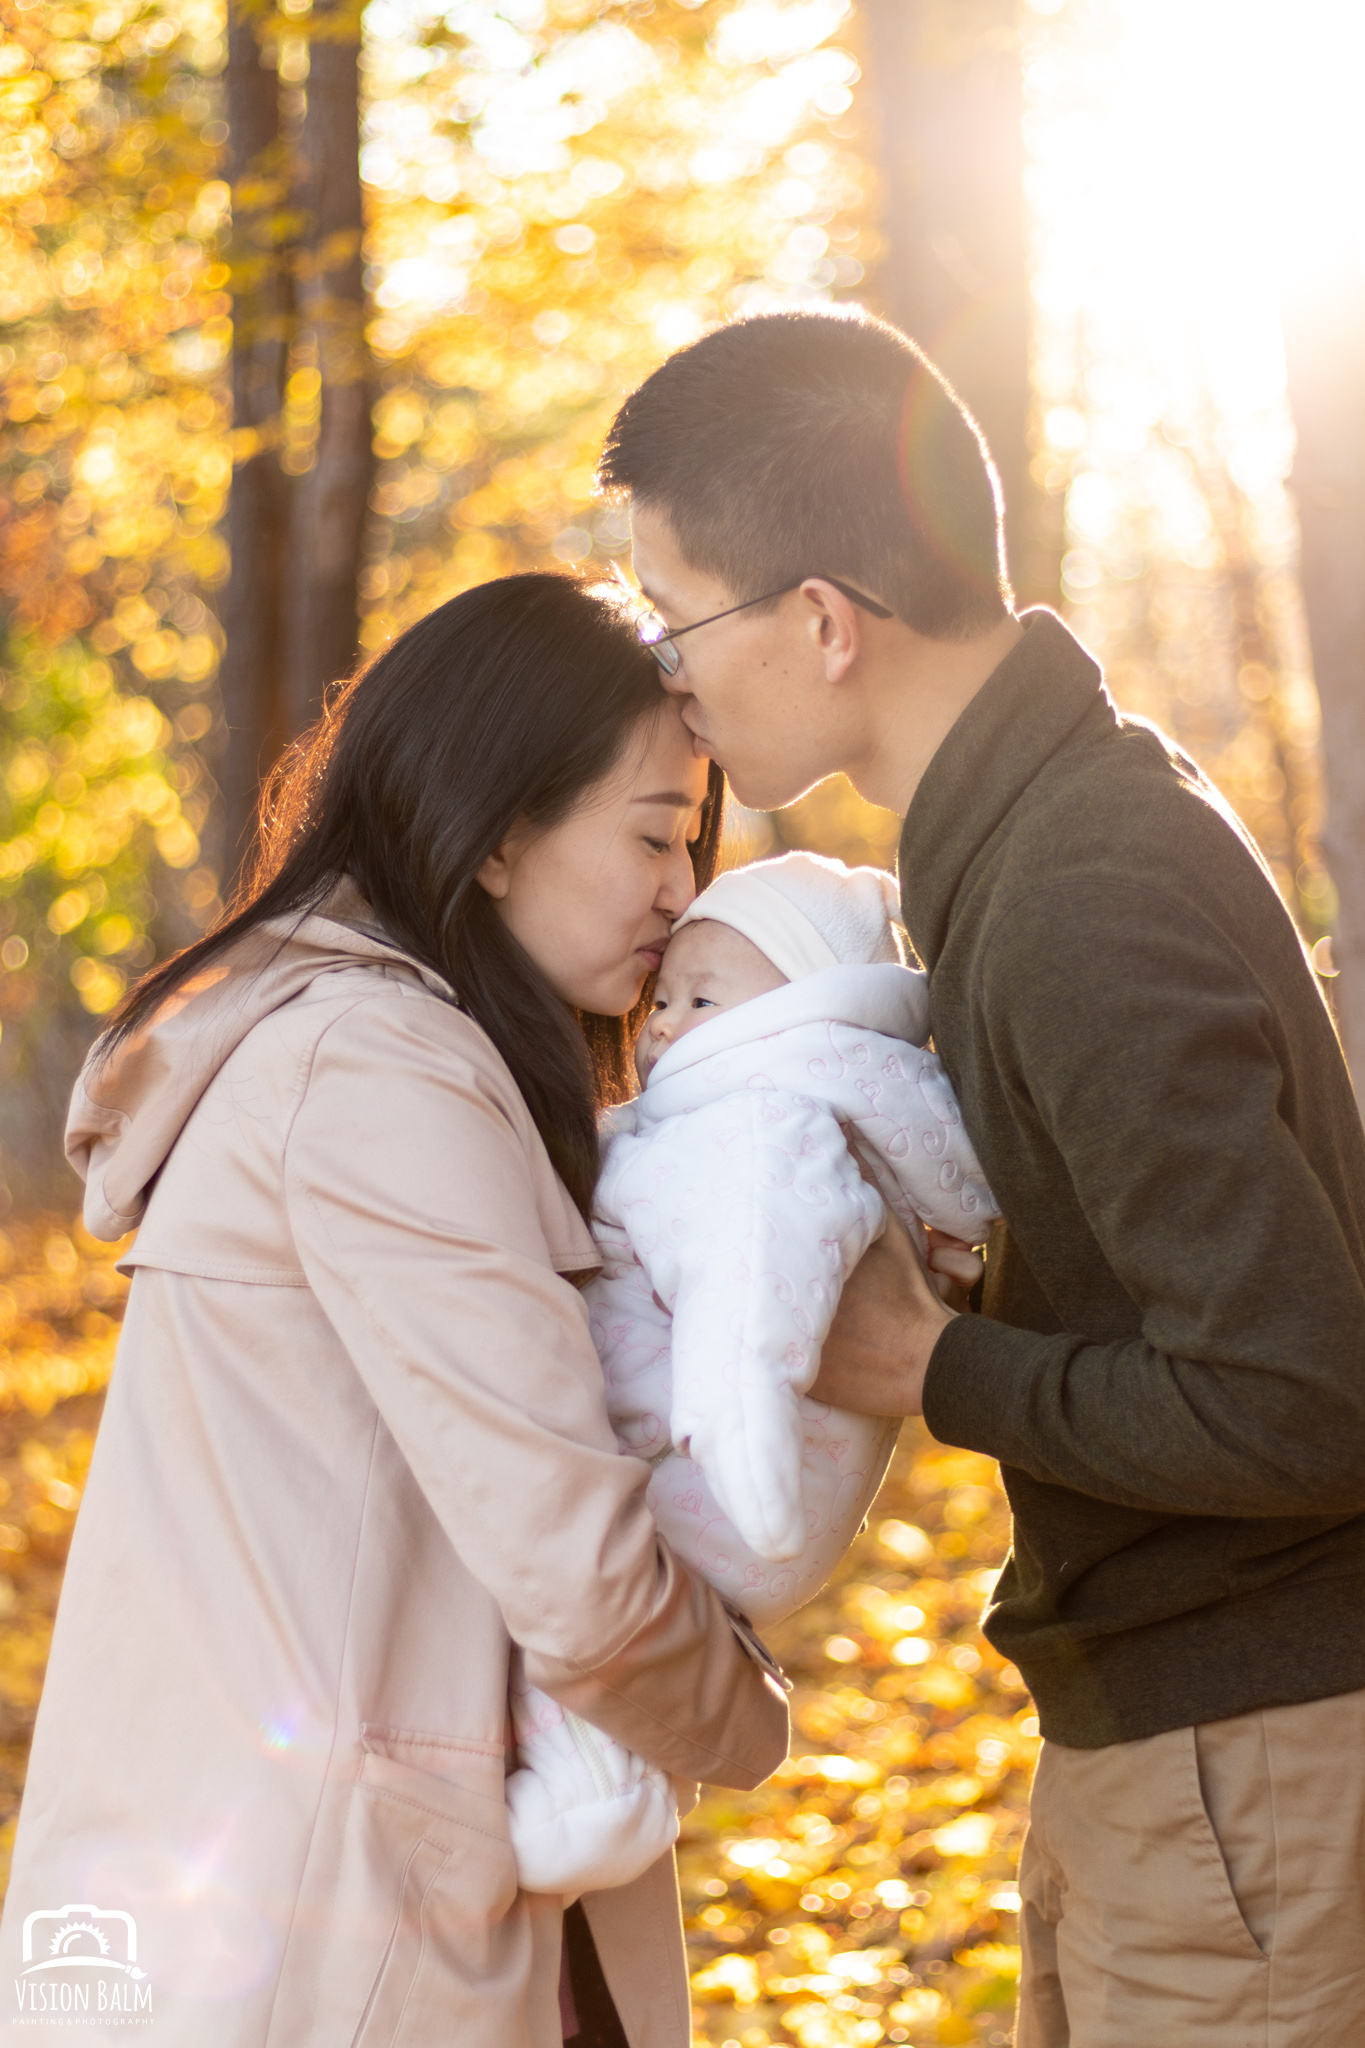 Family fall portrait of young couple with their baby kissing in the park photographed by Vision Balm in Charleston, SC.